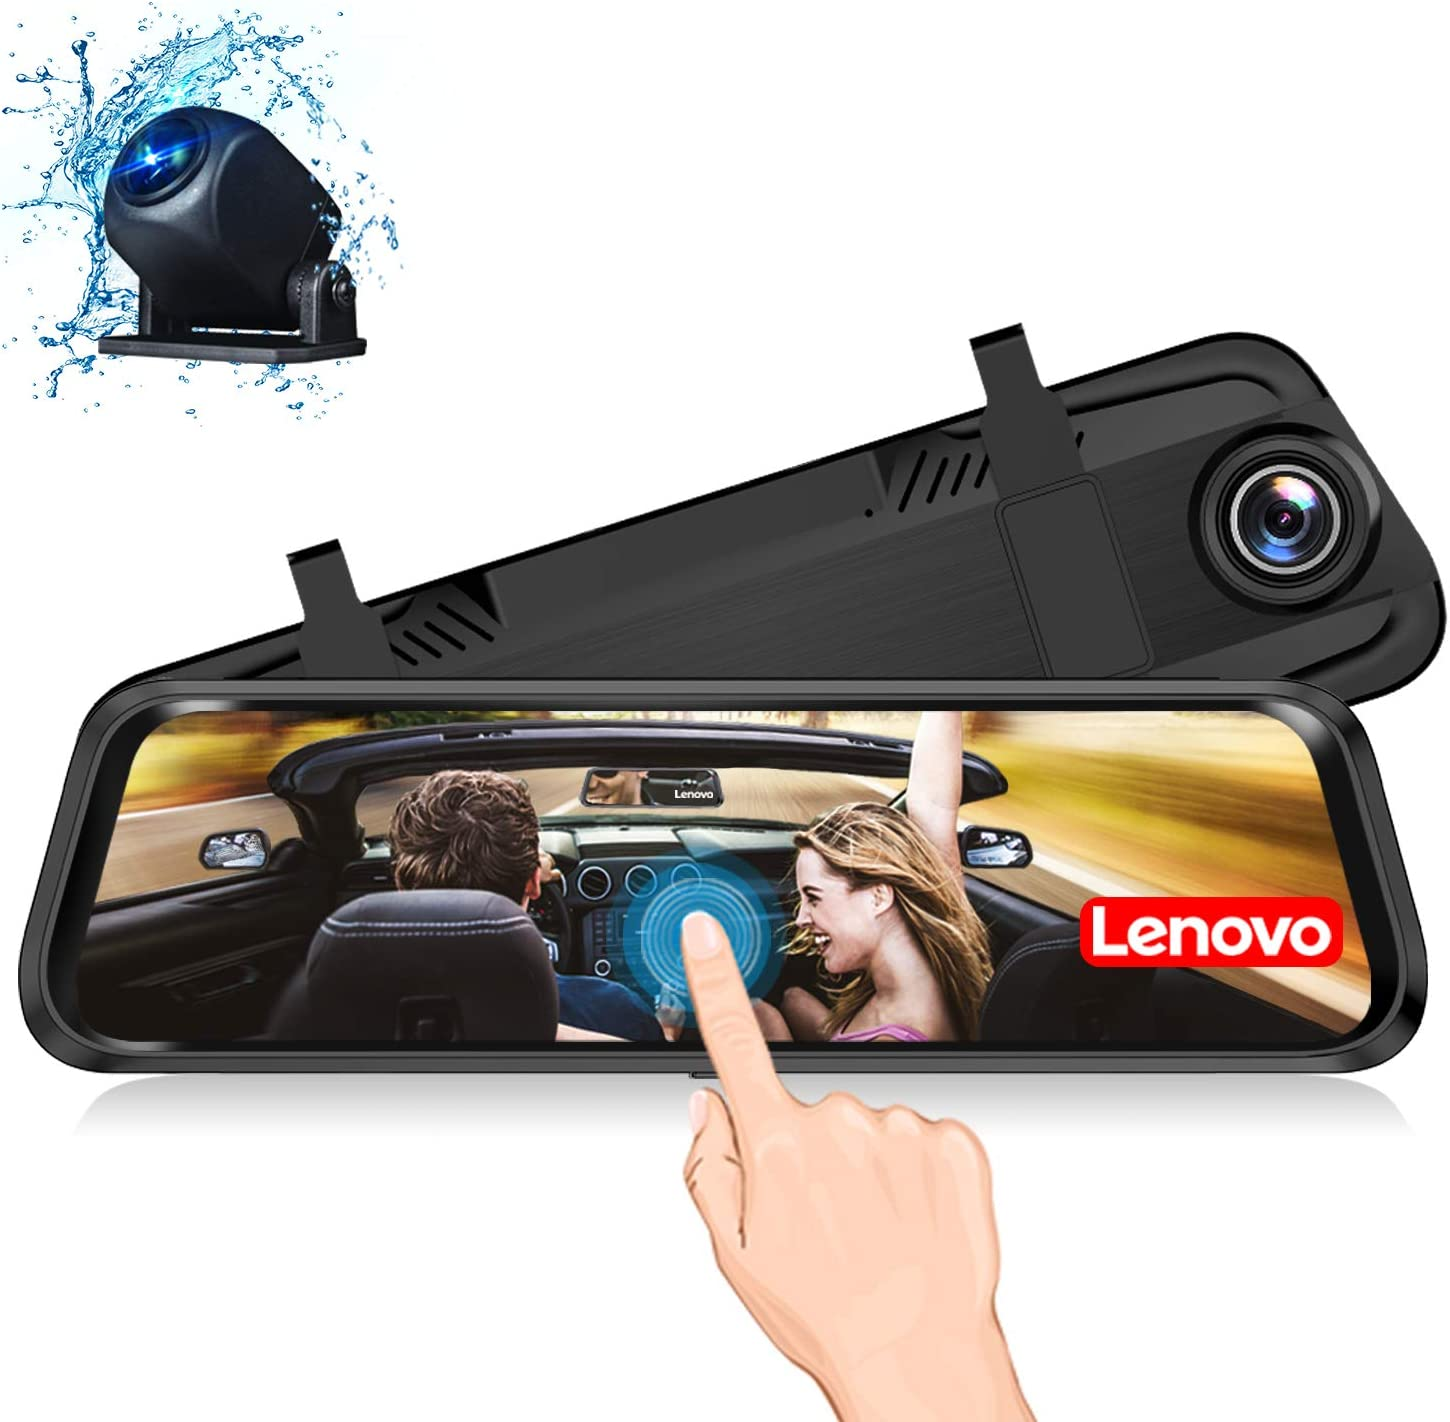 Lenovo Mirror Dash Cam 1080P Cam Touch Full Screen Rearview Front and Rear Dual Lens Waterproof Full HD Camera Touch Screen HR06A Backup Camera 9.66 Inch Mirror Dash Screen